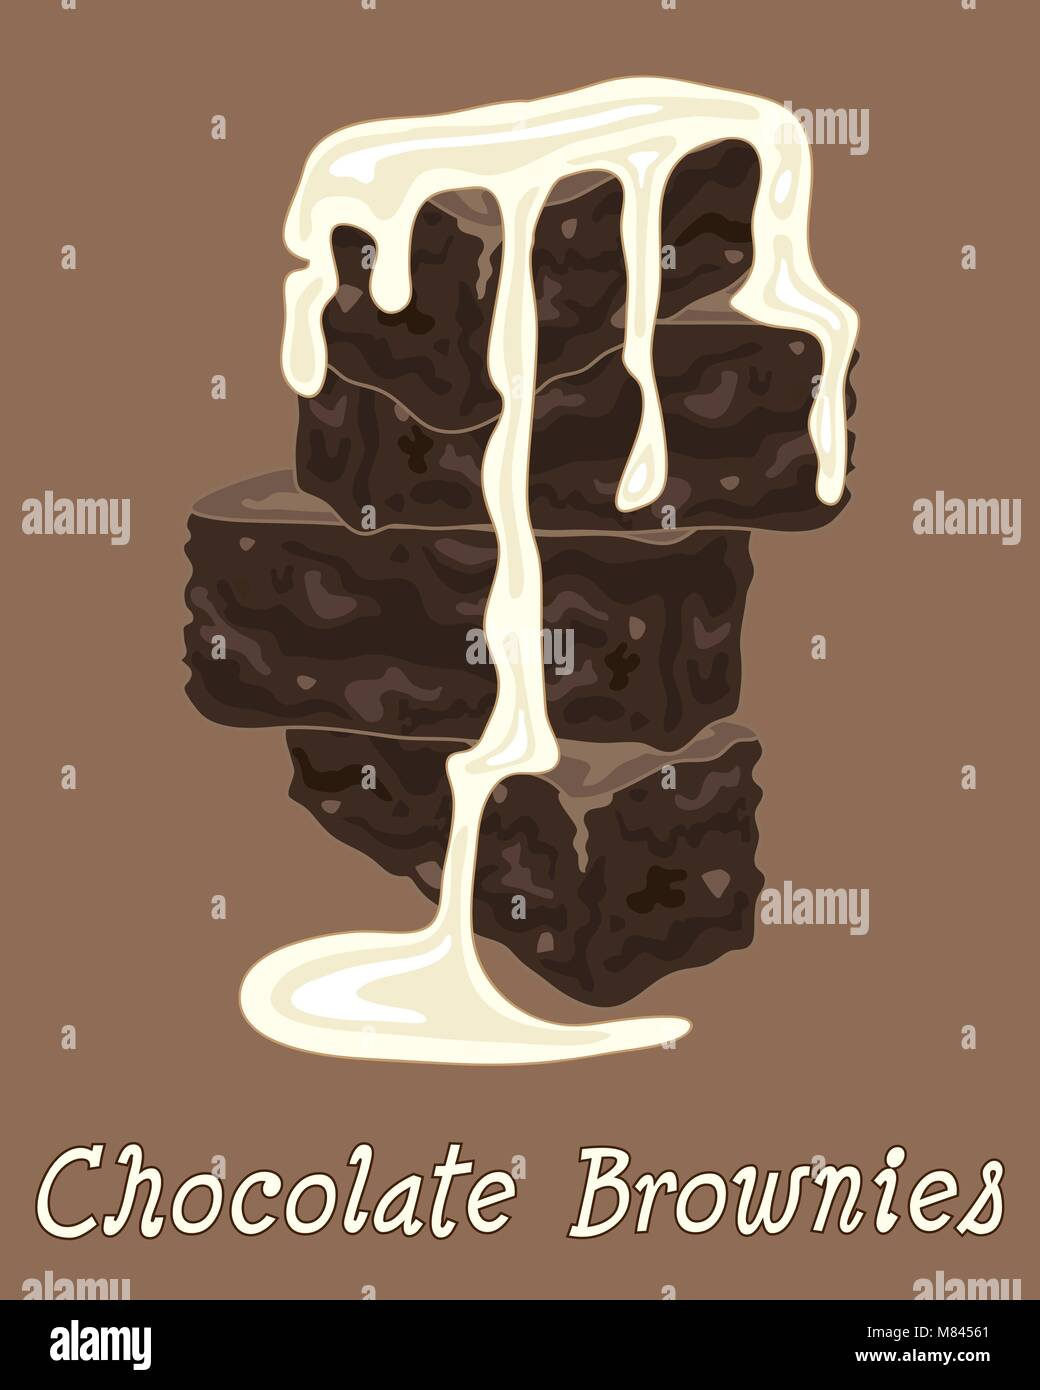 a vector illustration in eps format of a stack of chocolate brownies with cream on a brown background - Stock Image